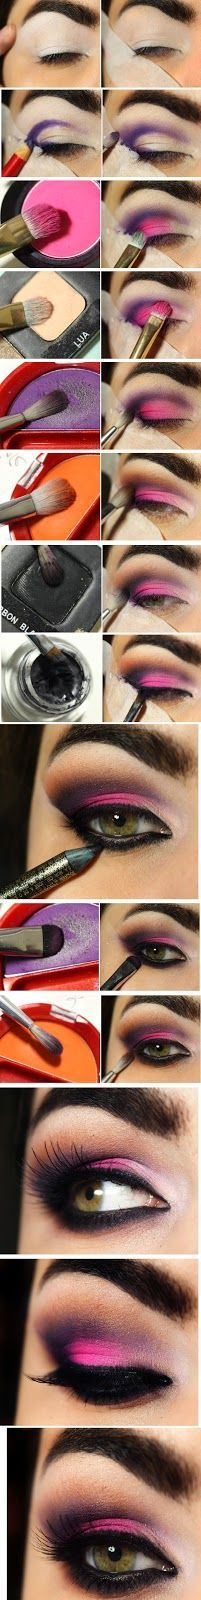 Gorgeous Special Rose Makeup Tutorials # Step by Step / LoLus Makeup Fashion